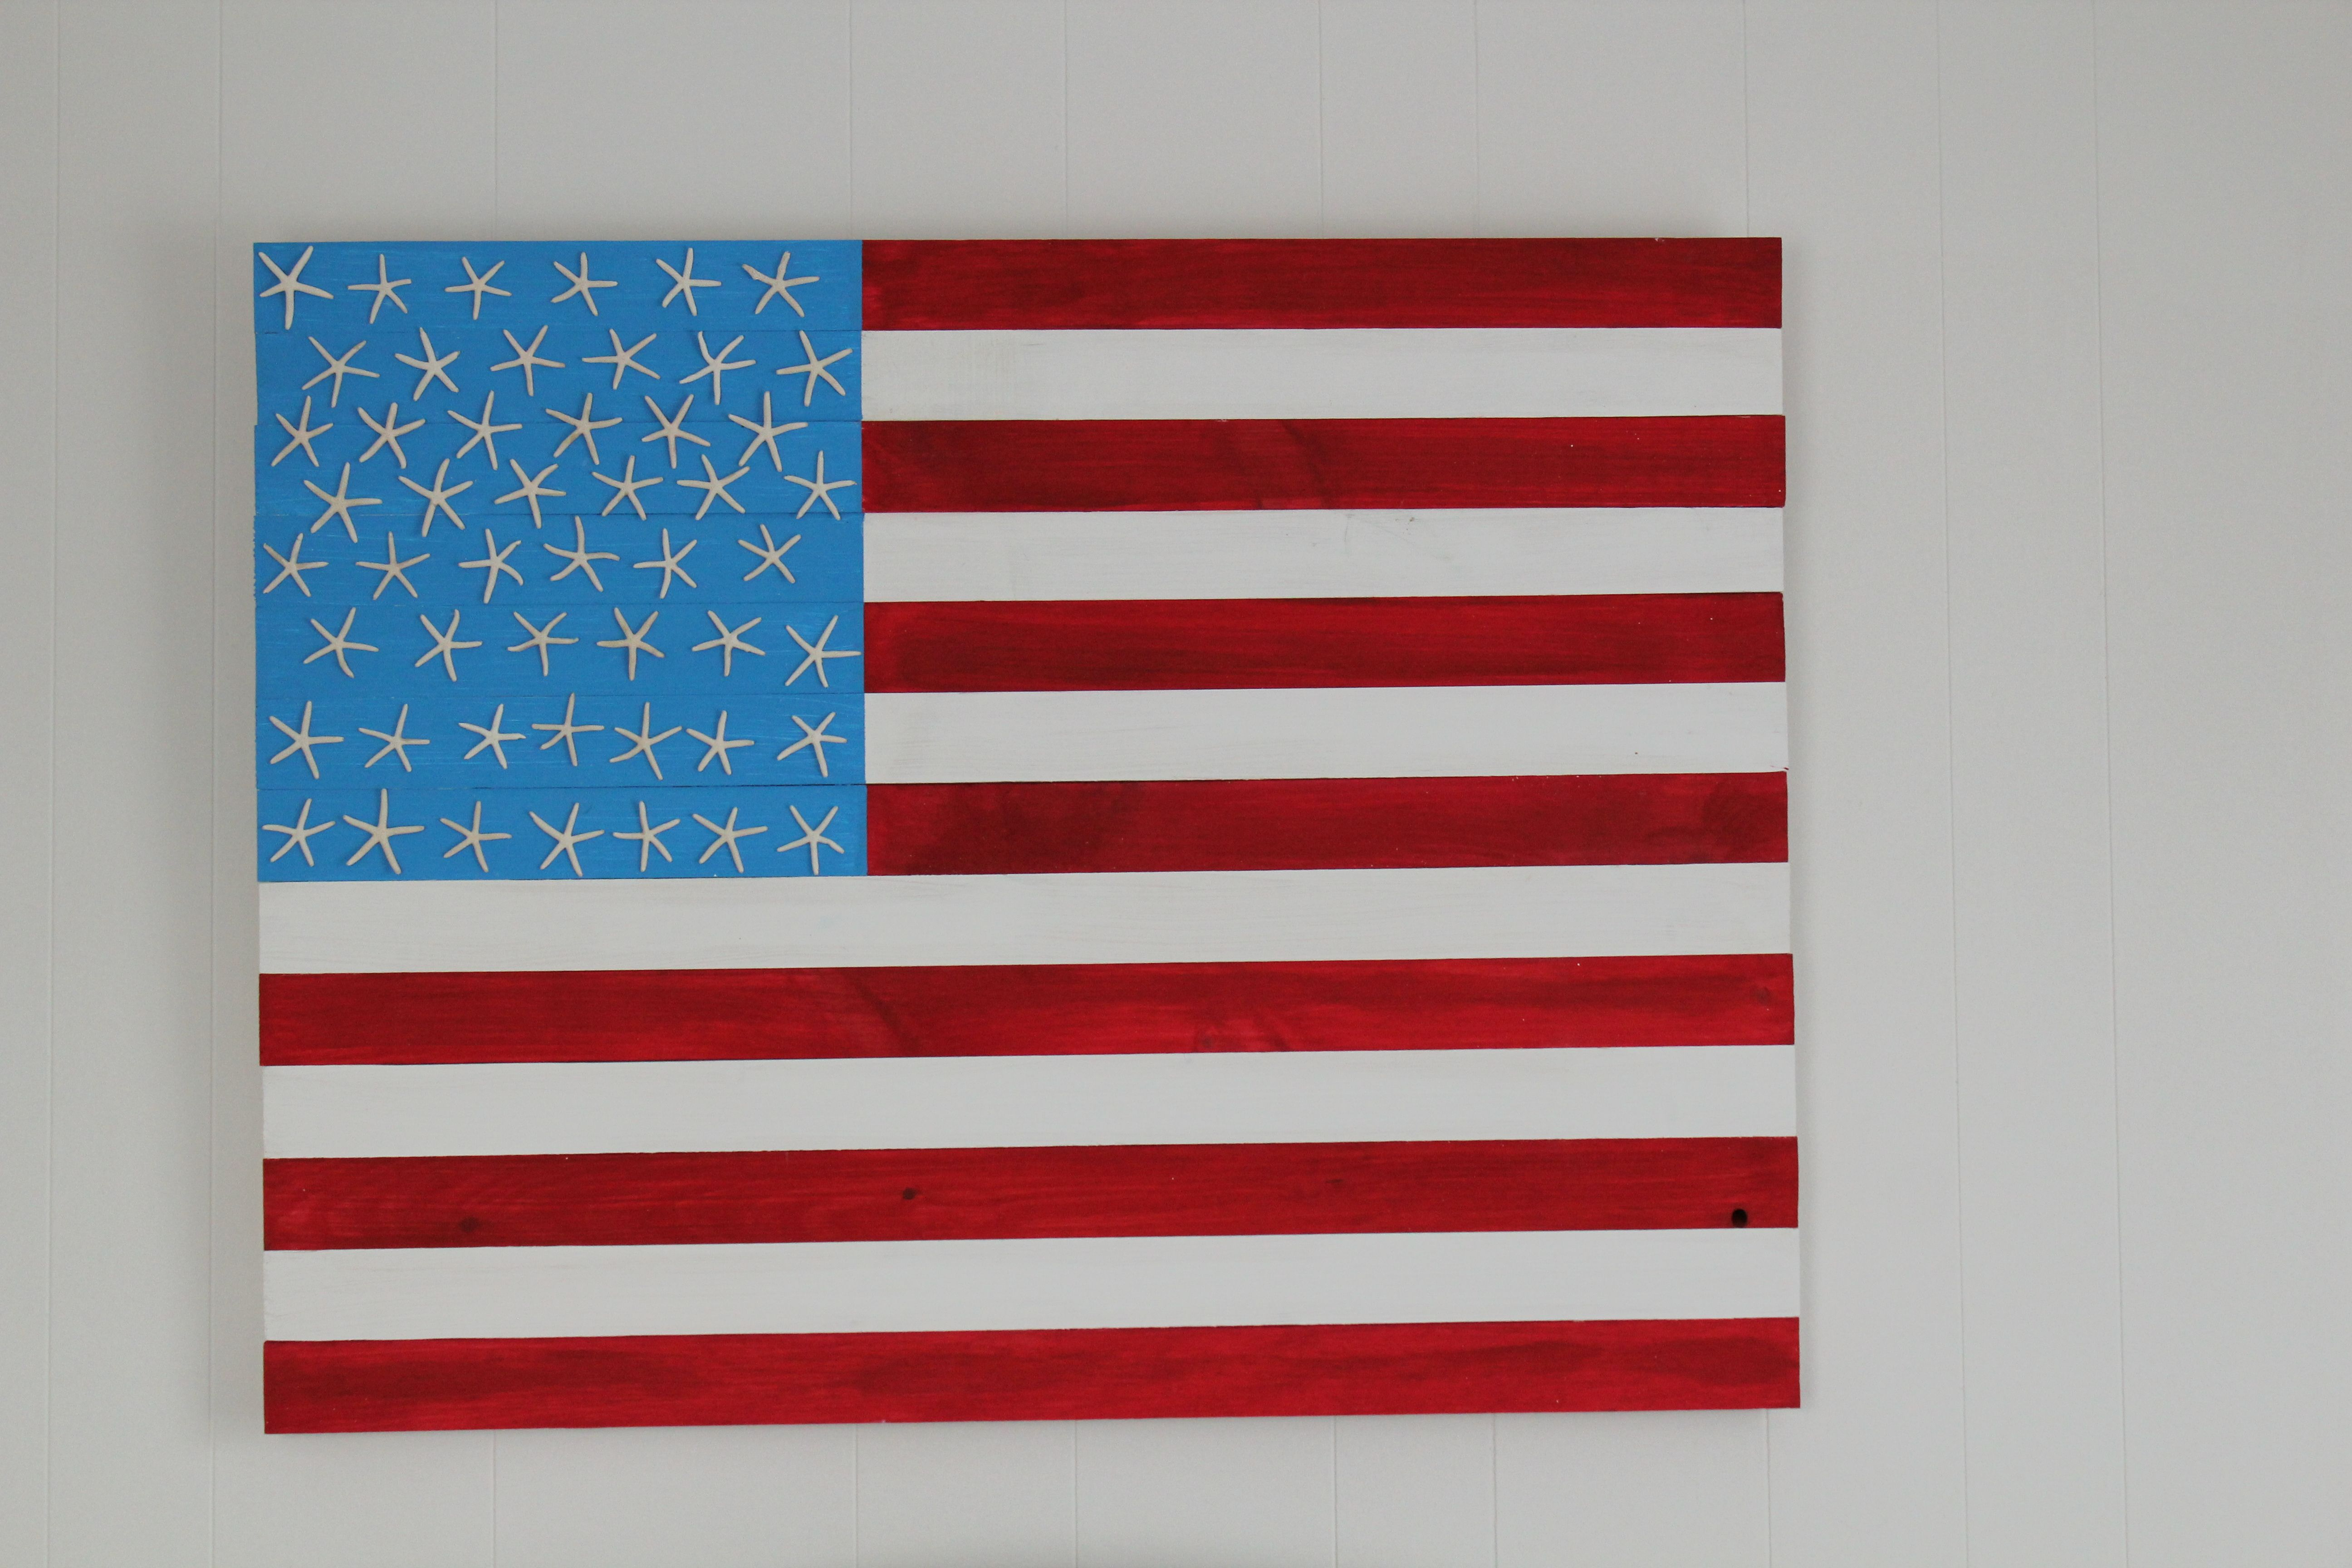 what does the usa flag represent